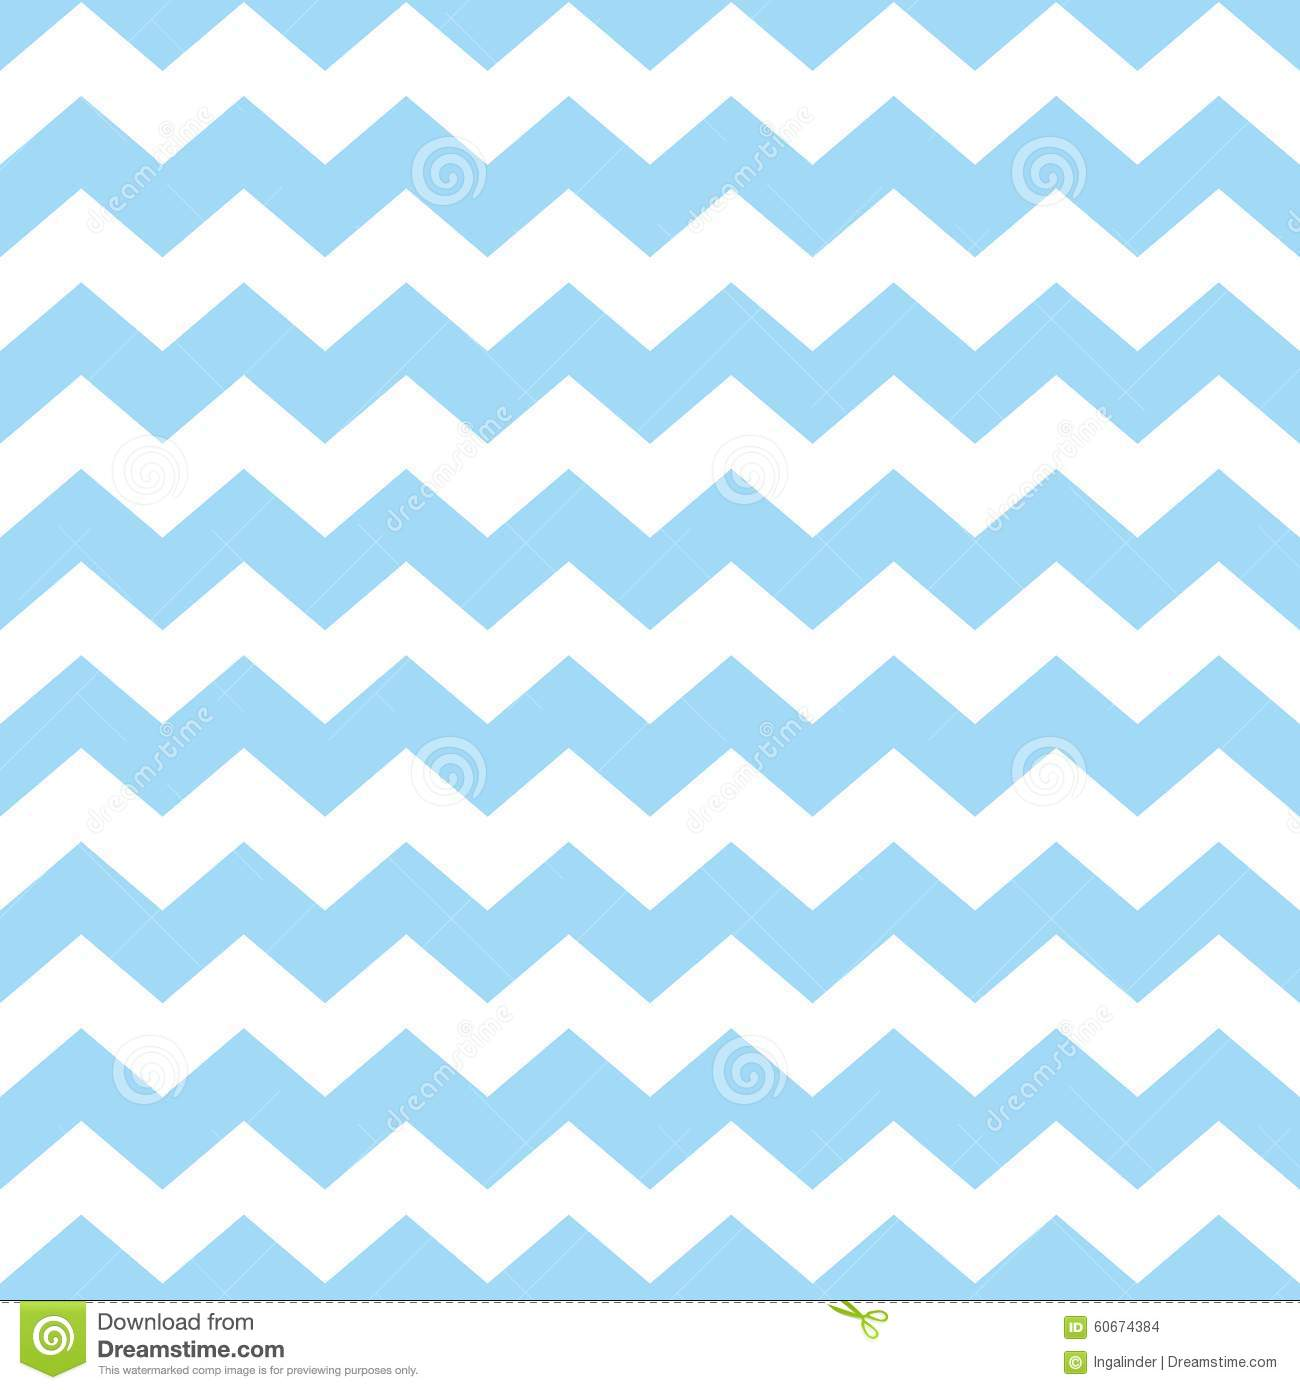 Tile Chevron Vector Pattern With Pastel Blue And White Zig Zag